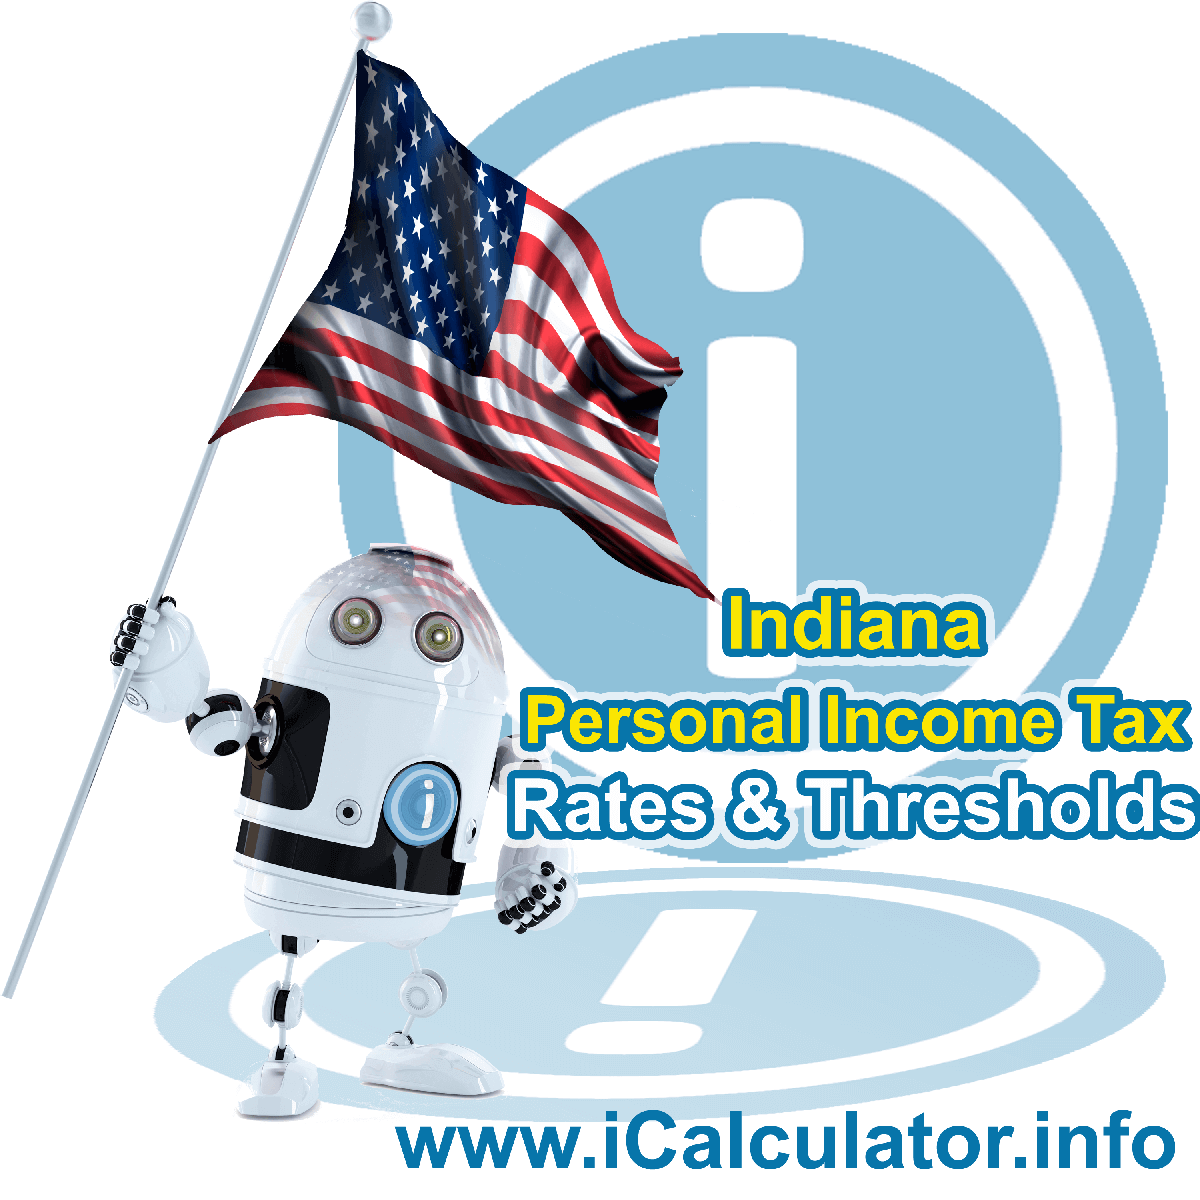 Indiana State Tax Tables 2013. This image displays details of the Indiana State Tax Tables for the 2013 tax return year which is provided in support of the 2013 US Tax Calculator